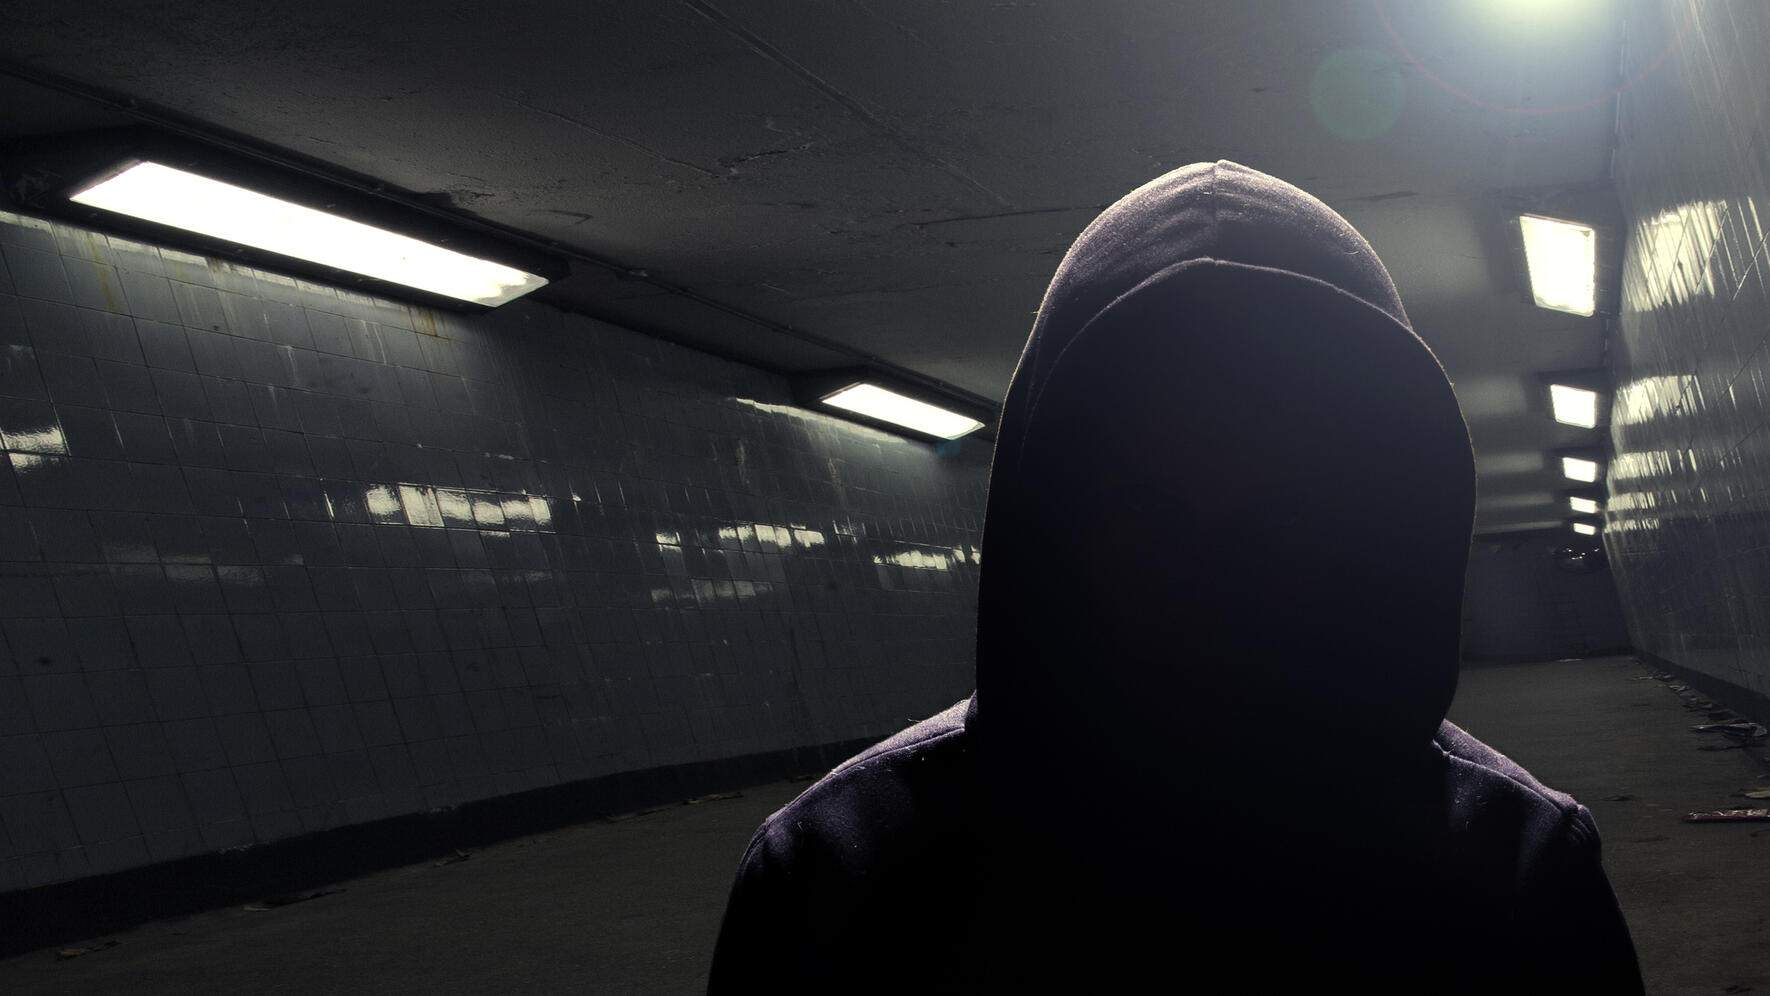 Silhouette of a man wearing a hooded shirt standing in an underpass.